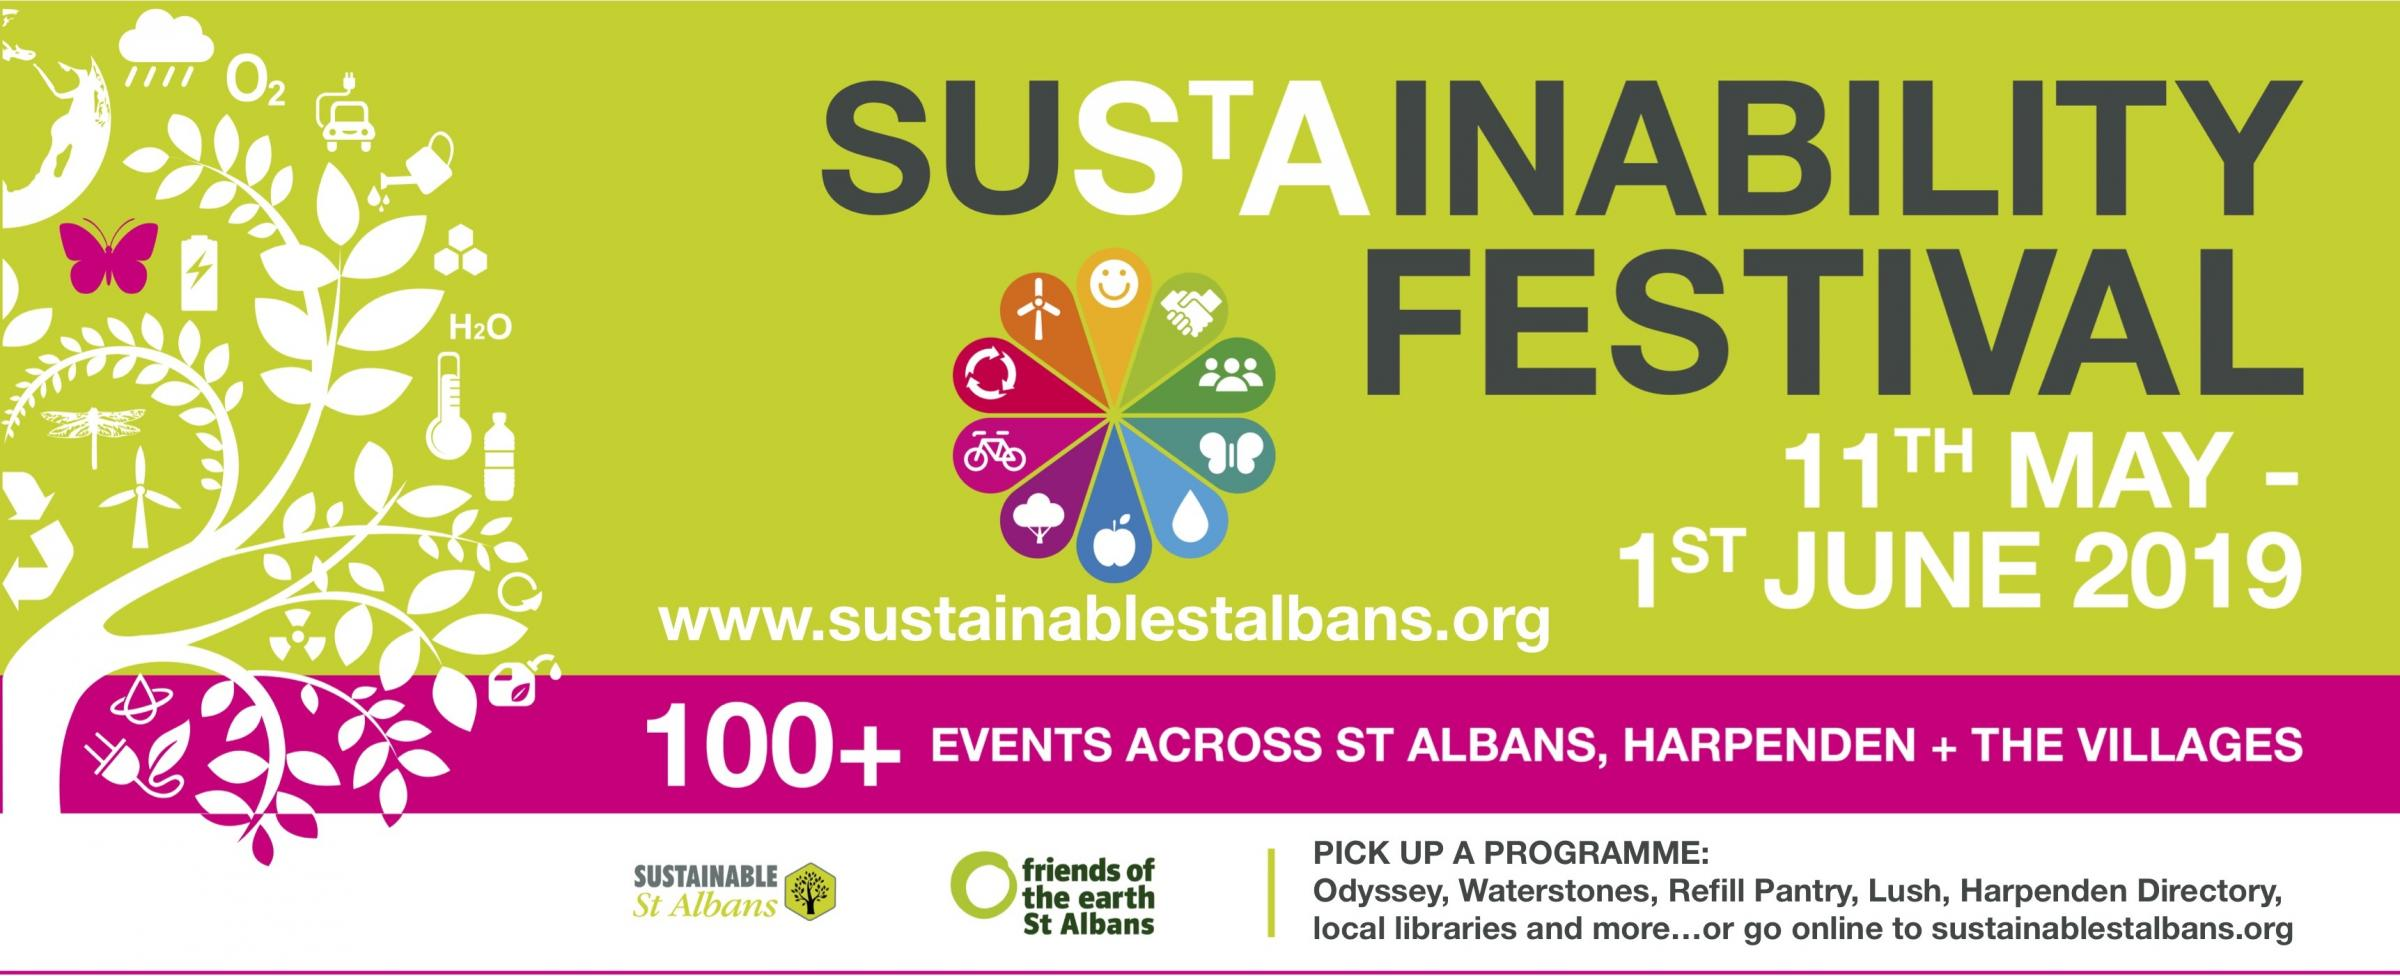 St Albans Sustainability Festival